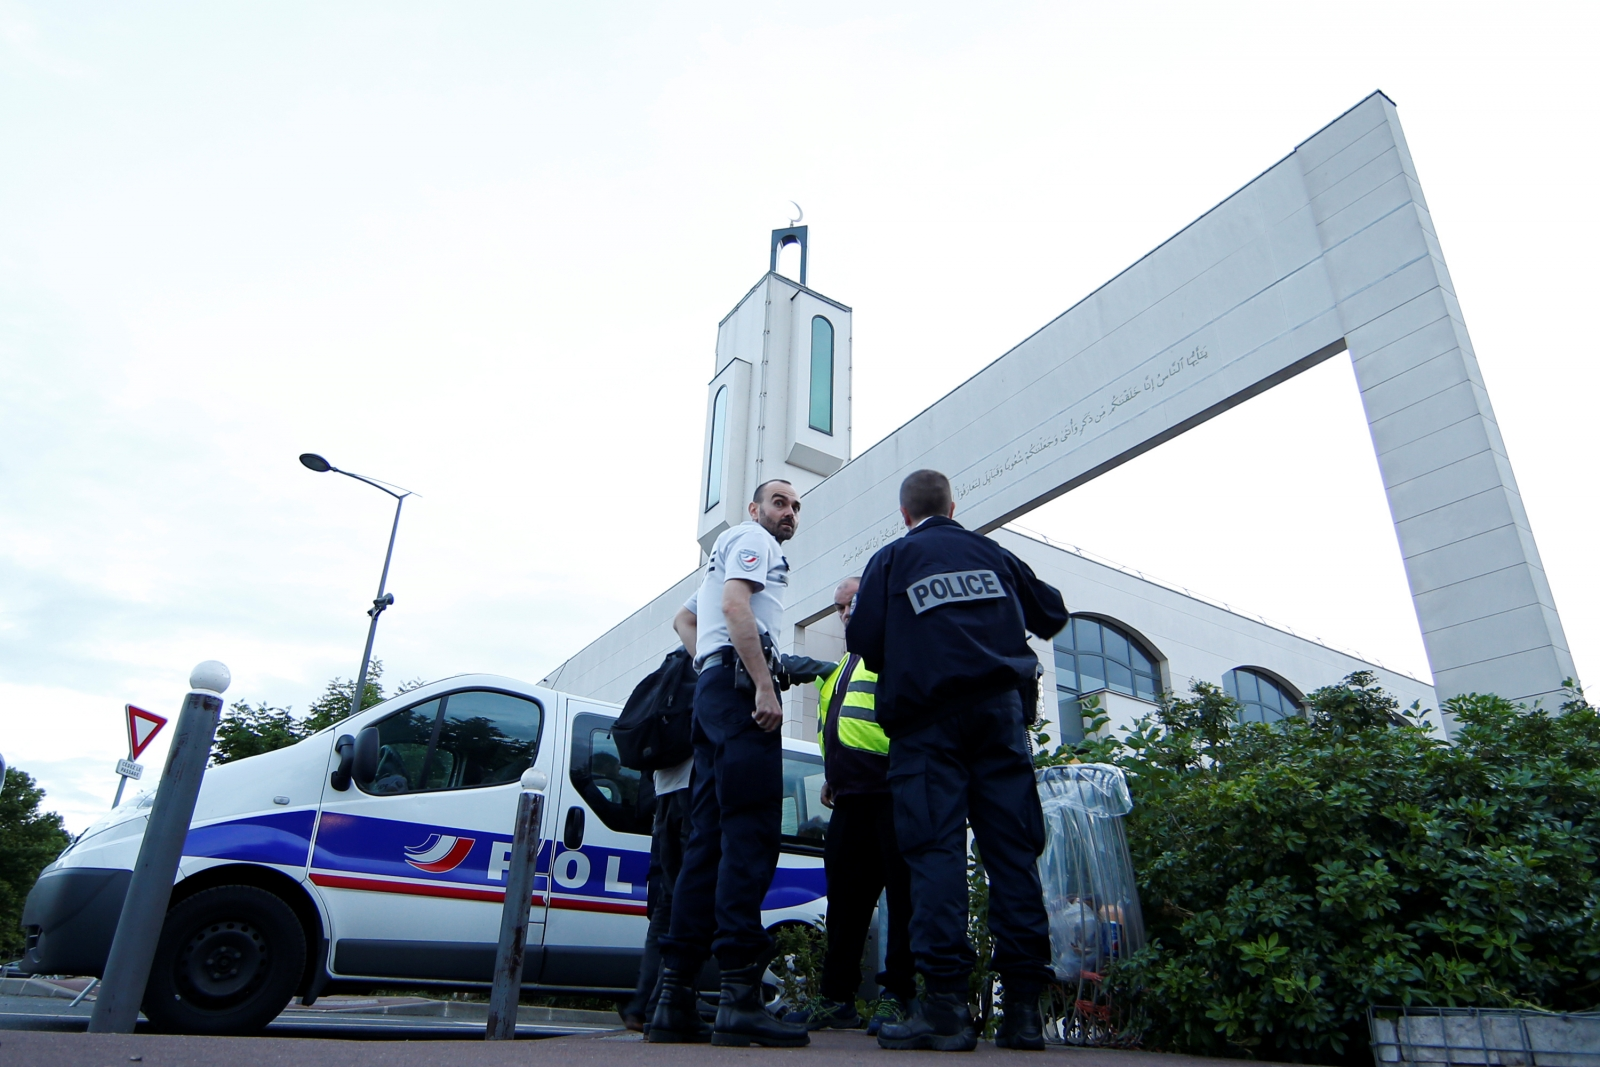 Paris: Man arrested for trying to plough through pedestrians outside mosque